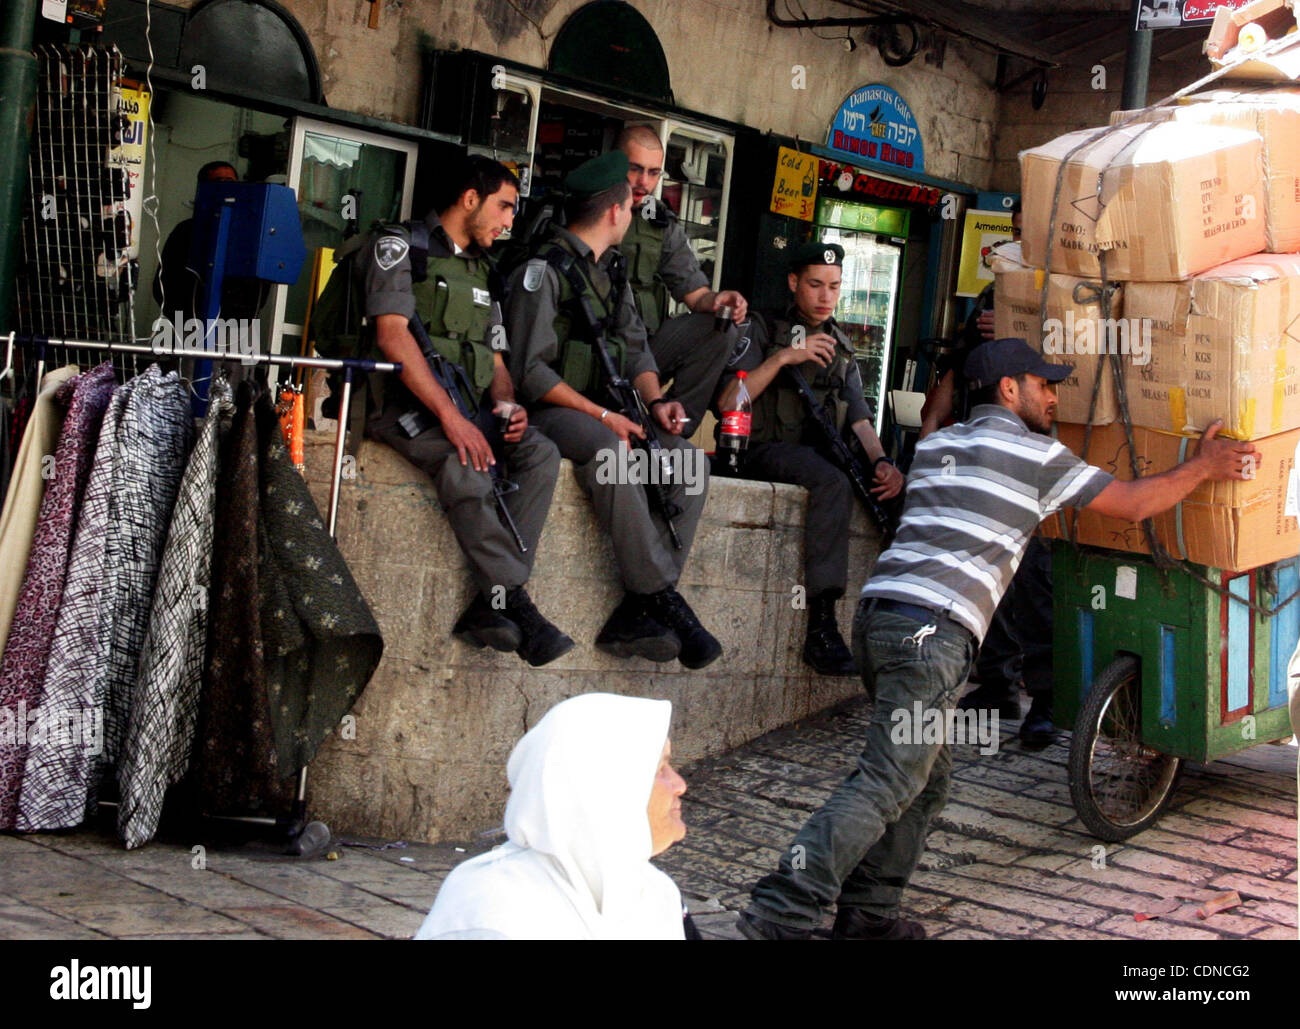 May 22, 2011 - Jerusalem, Israel - Israeli border policemen stand guard at the main market in Jerusalem's old - Stock Image